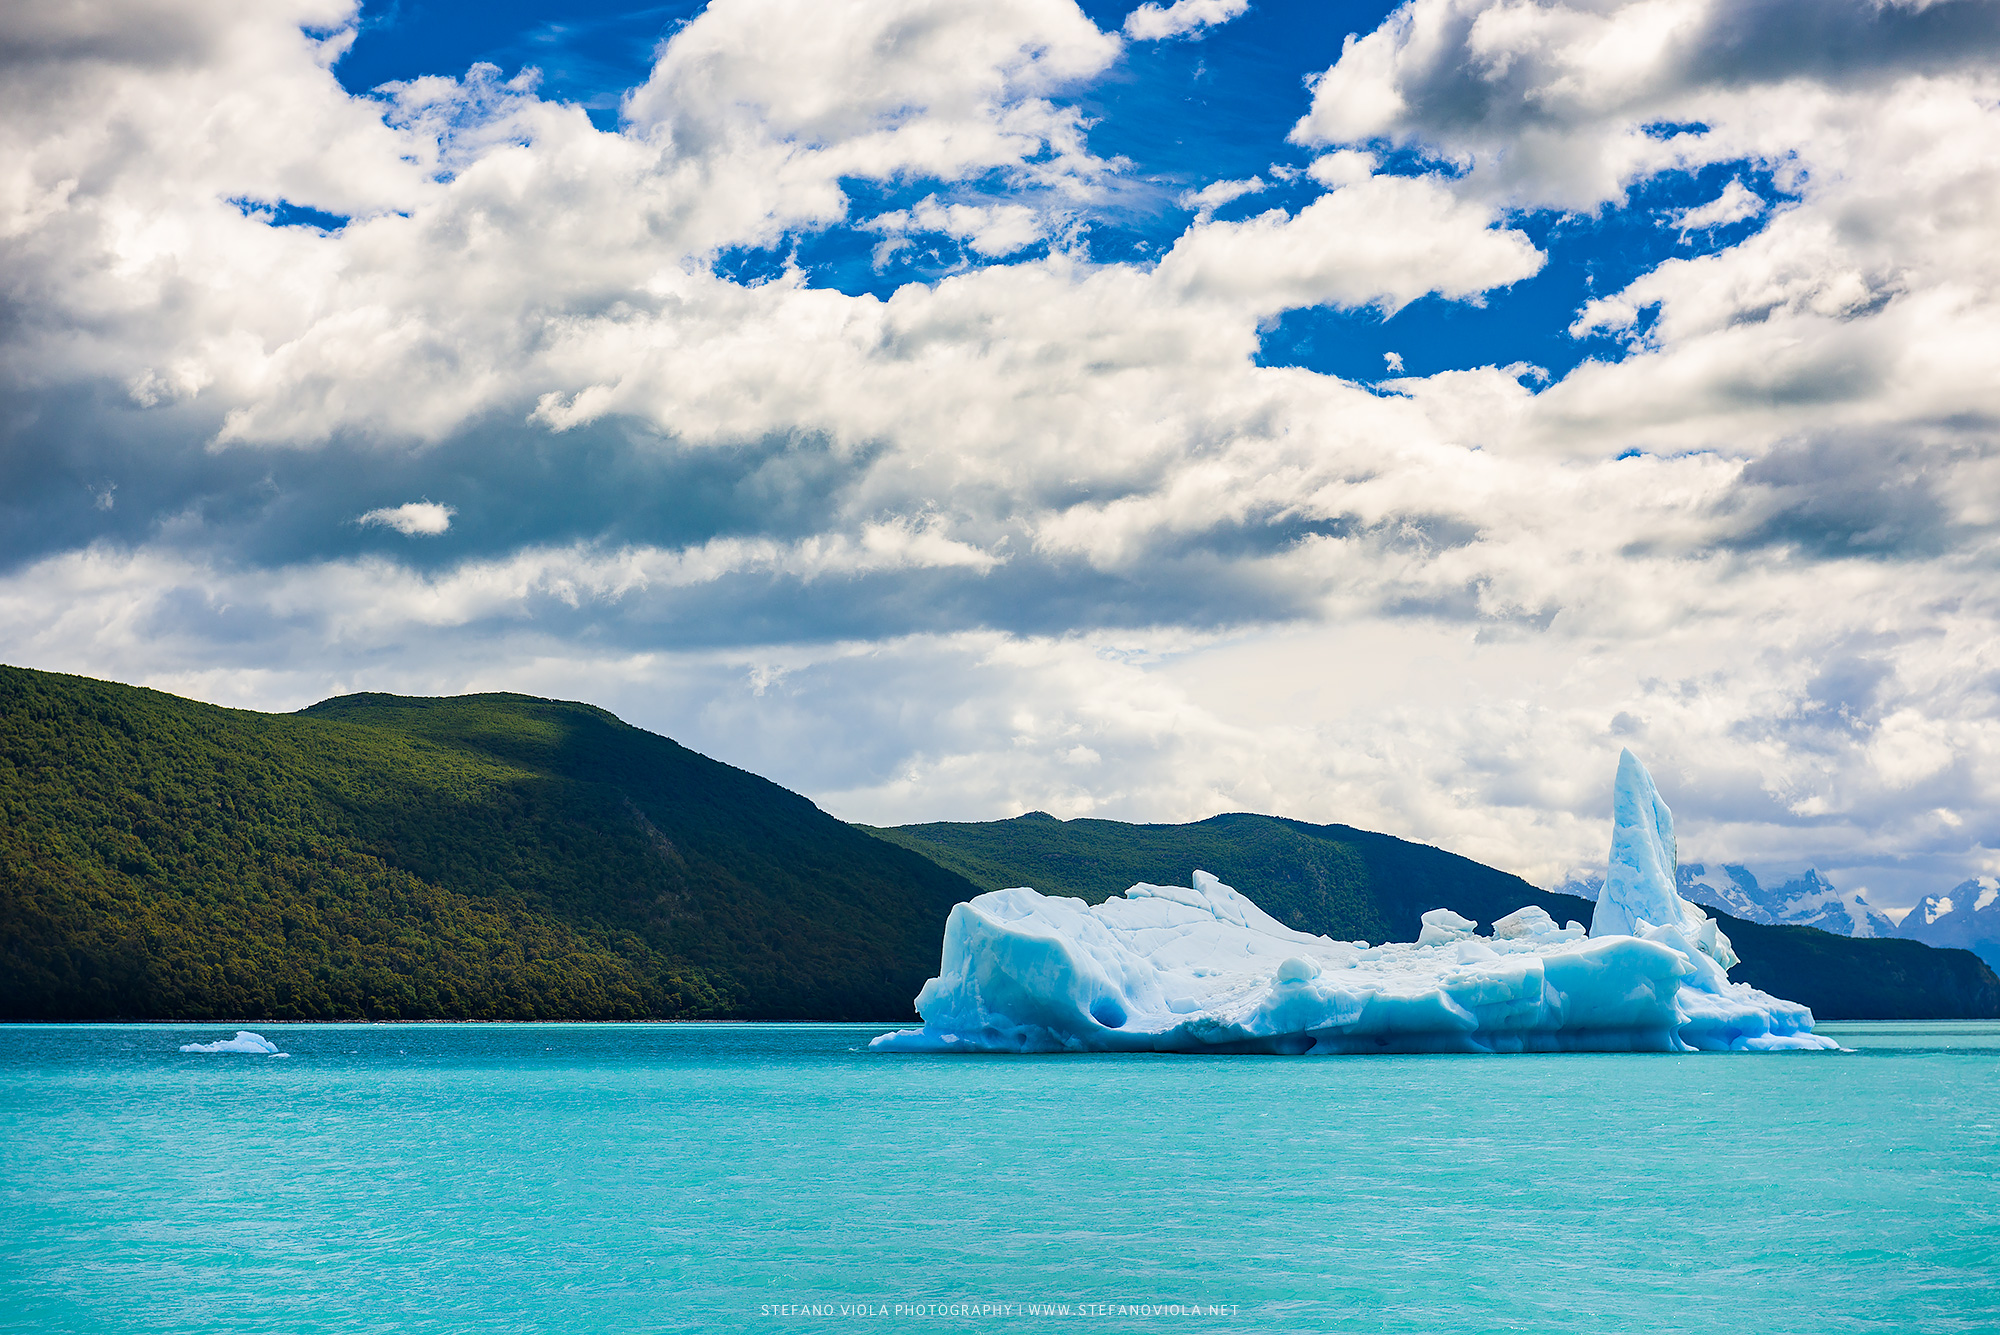 An iceberg at Los Glaciares National Park